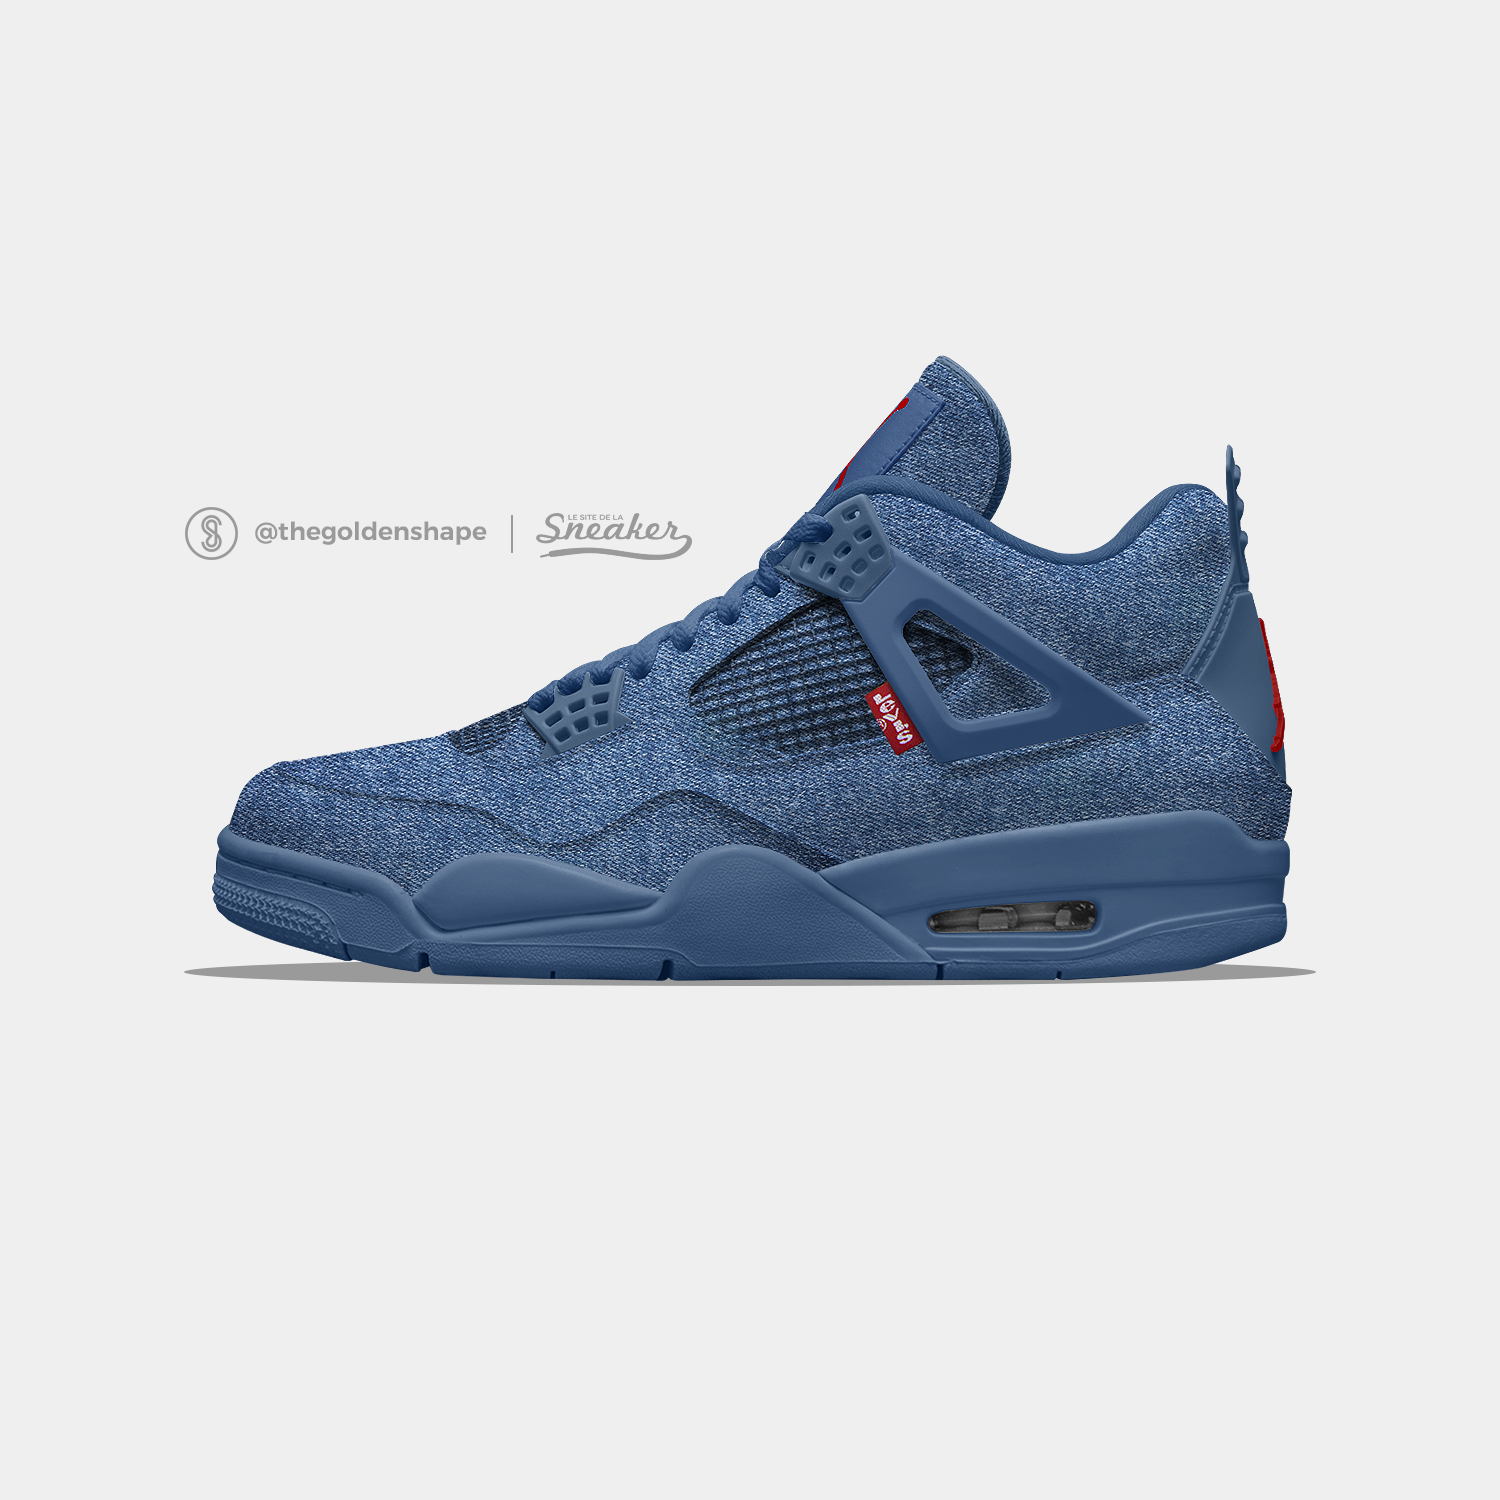 Levis X Air Jordan Denim Pack Air Jordan And Clothes - Pages invoice templates free kaws online store